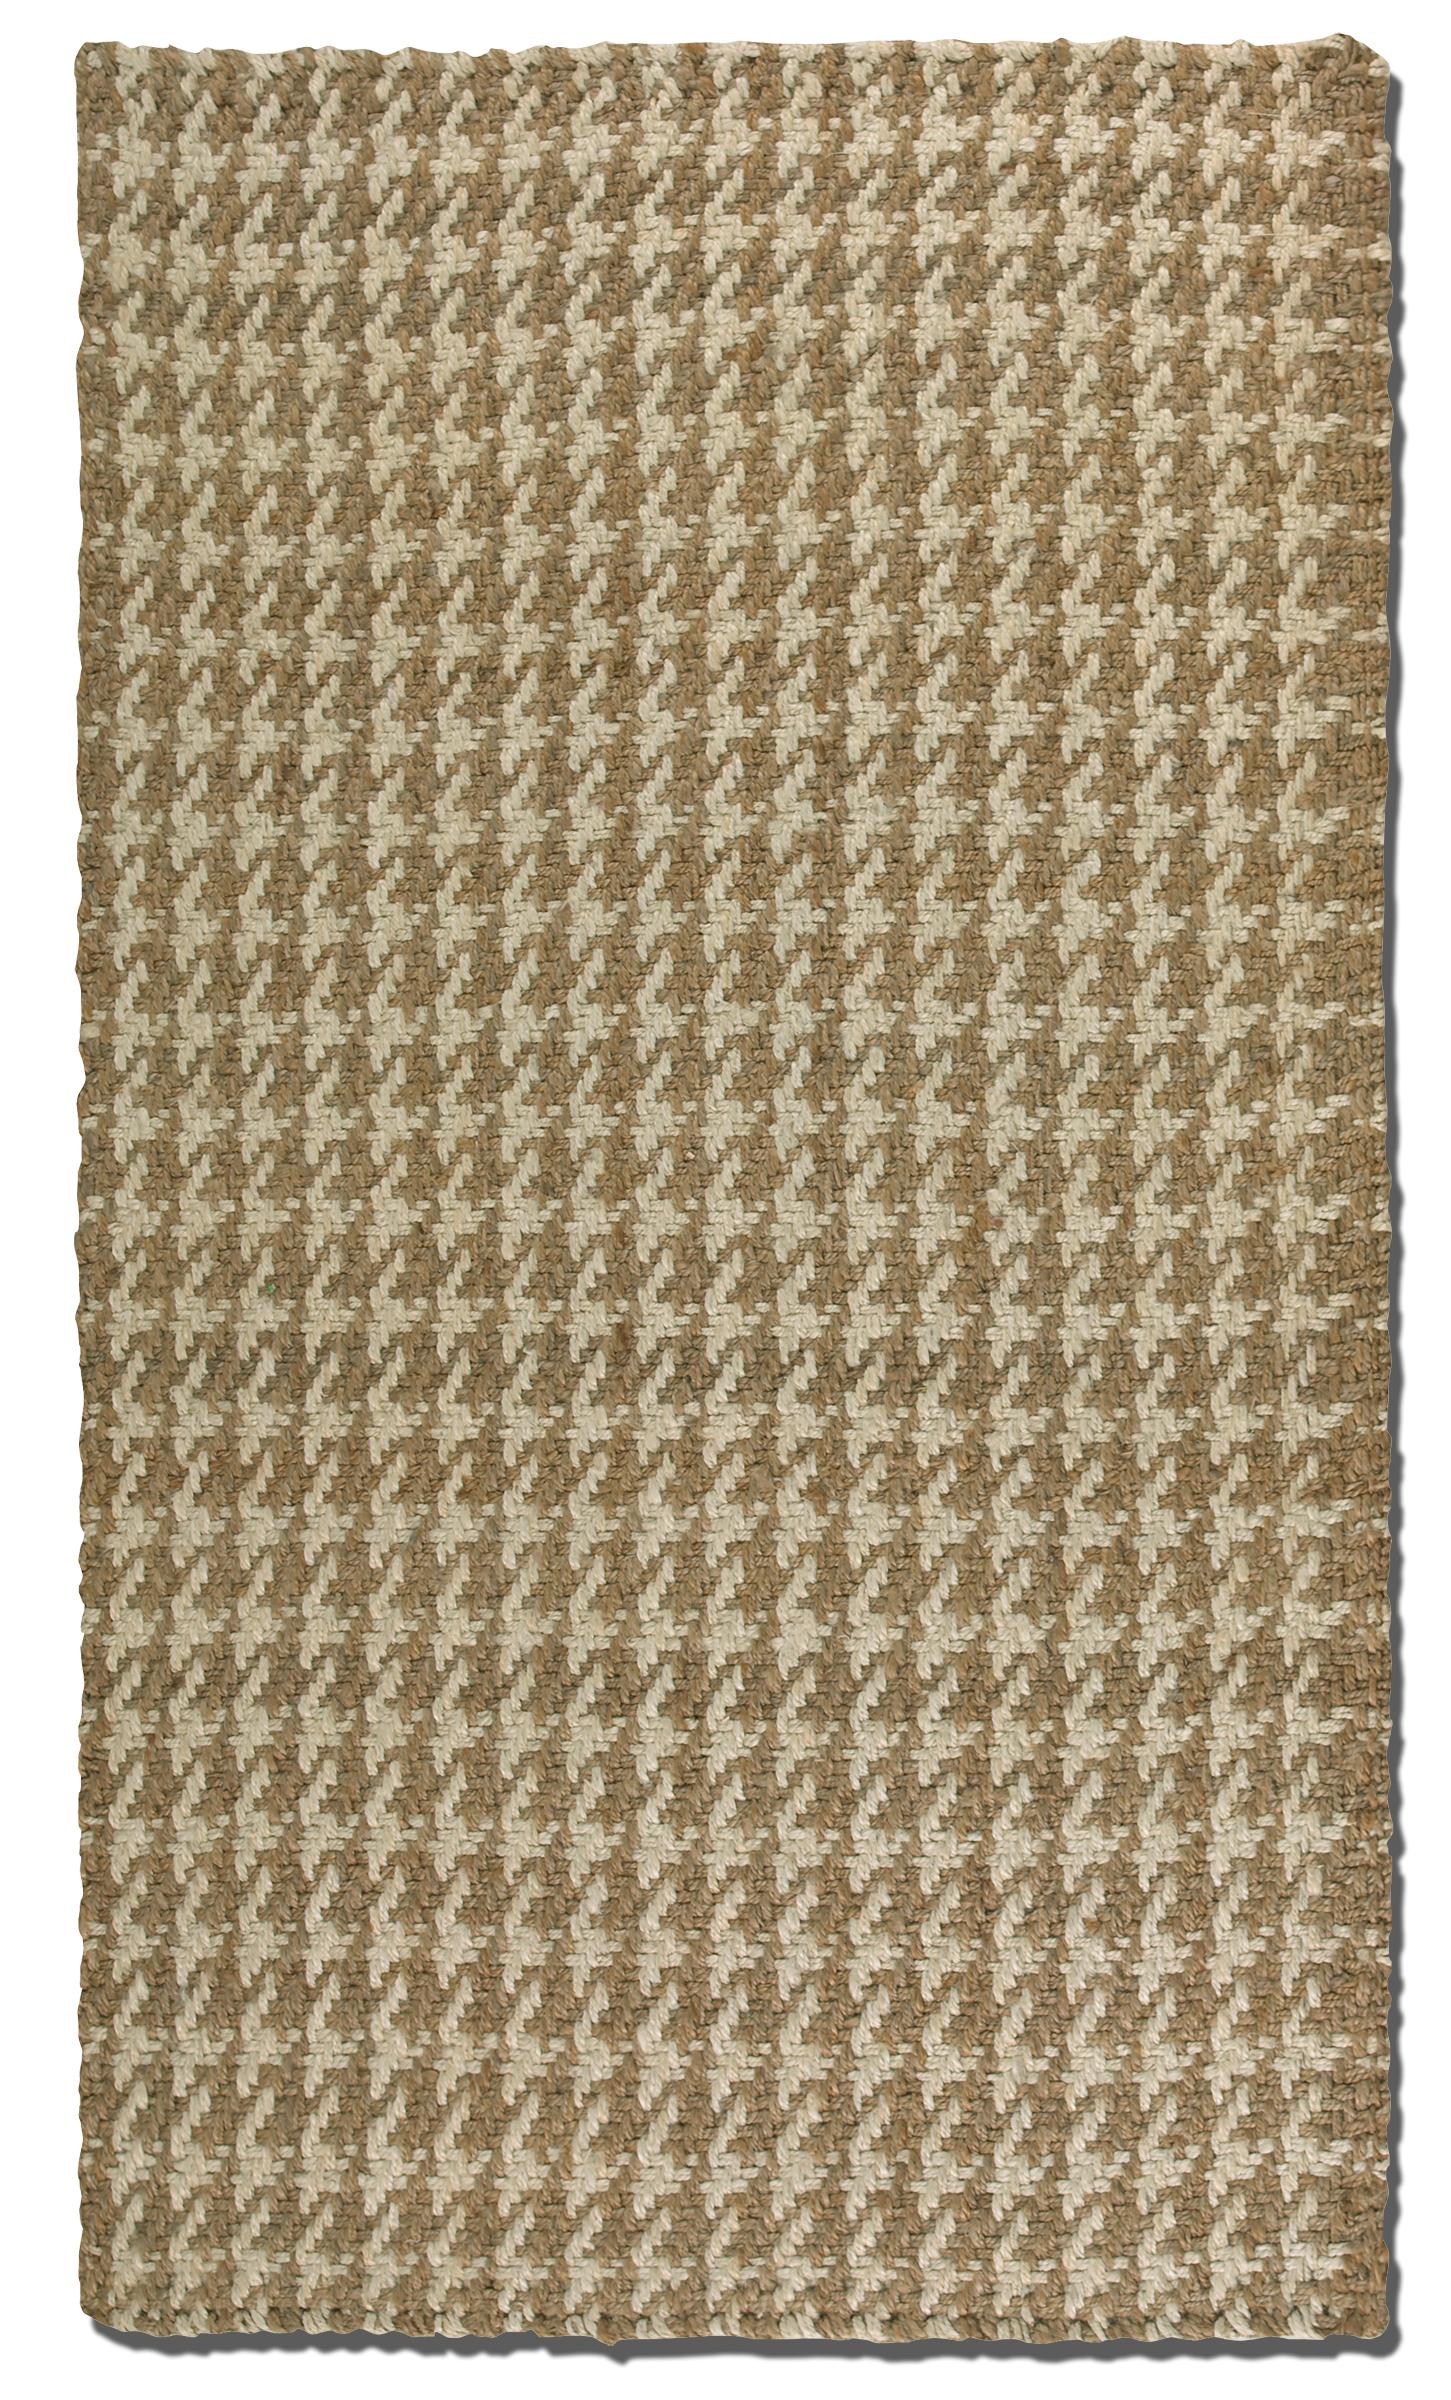 Uttermost Rugs Bengal 8 X 10  - Item Number: 71035-8